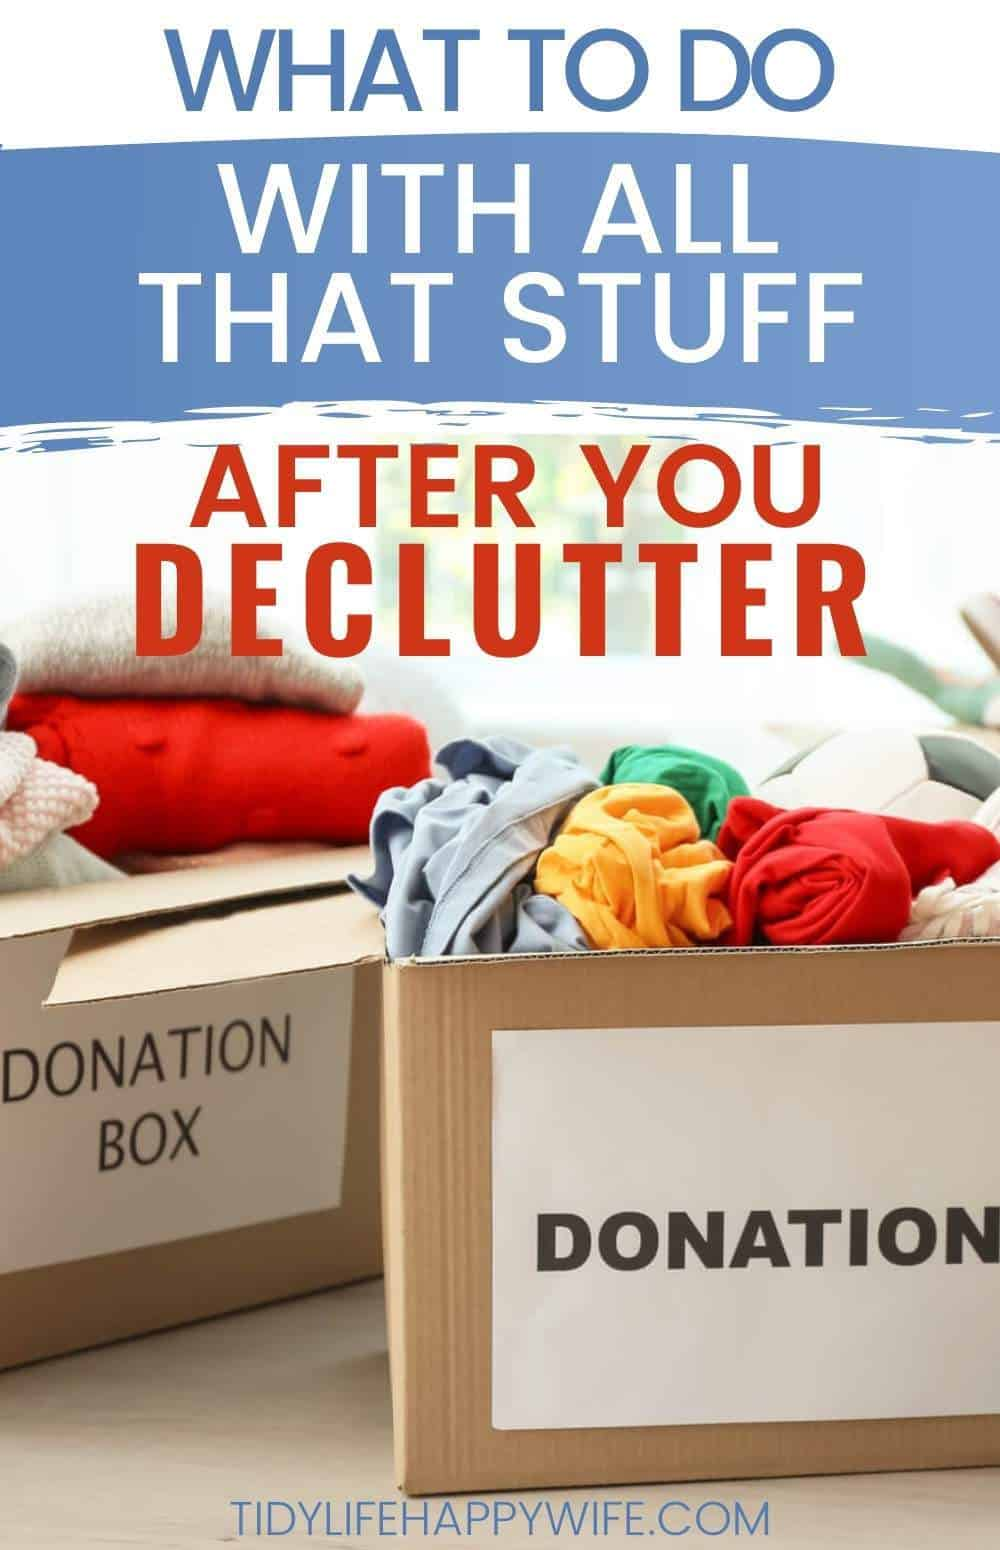 You finally decluttered your home, but what are you supposed to do with things after decluttering them? You need to know how to declutter and get it all out of your house so it doesn't get cluttered again. Here are some no-cost, guilt-free ways to get rid of your unwanted stuff. Some of them might even encourage and motivate you and your family members to clear even more clutter than you intended to. Check out these decluttering ideas and tips for how to donate or recycle some of the things you no longer want or need. via @Tidylifehappywife